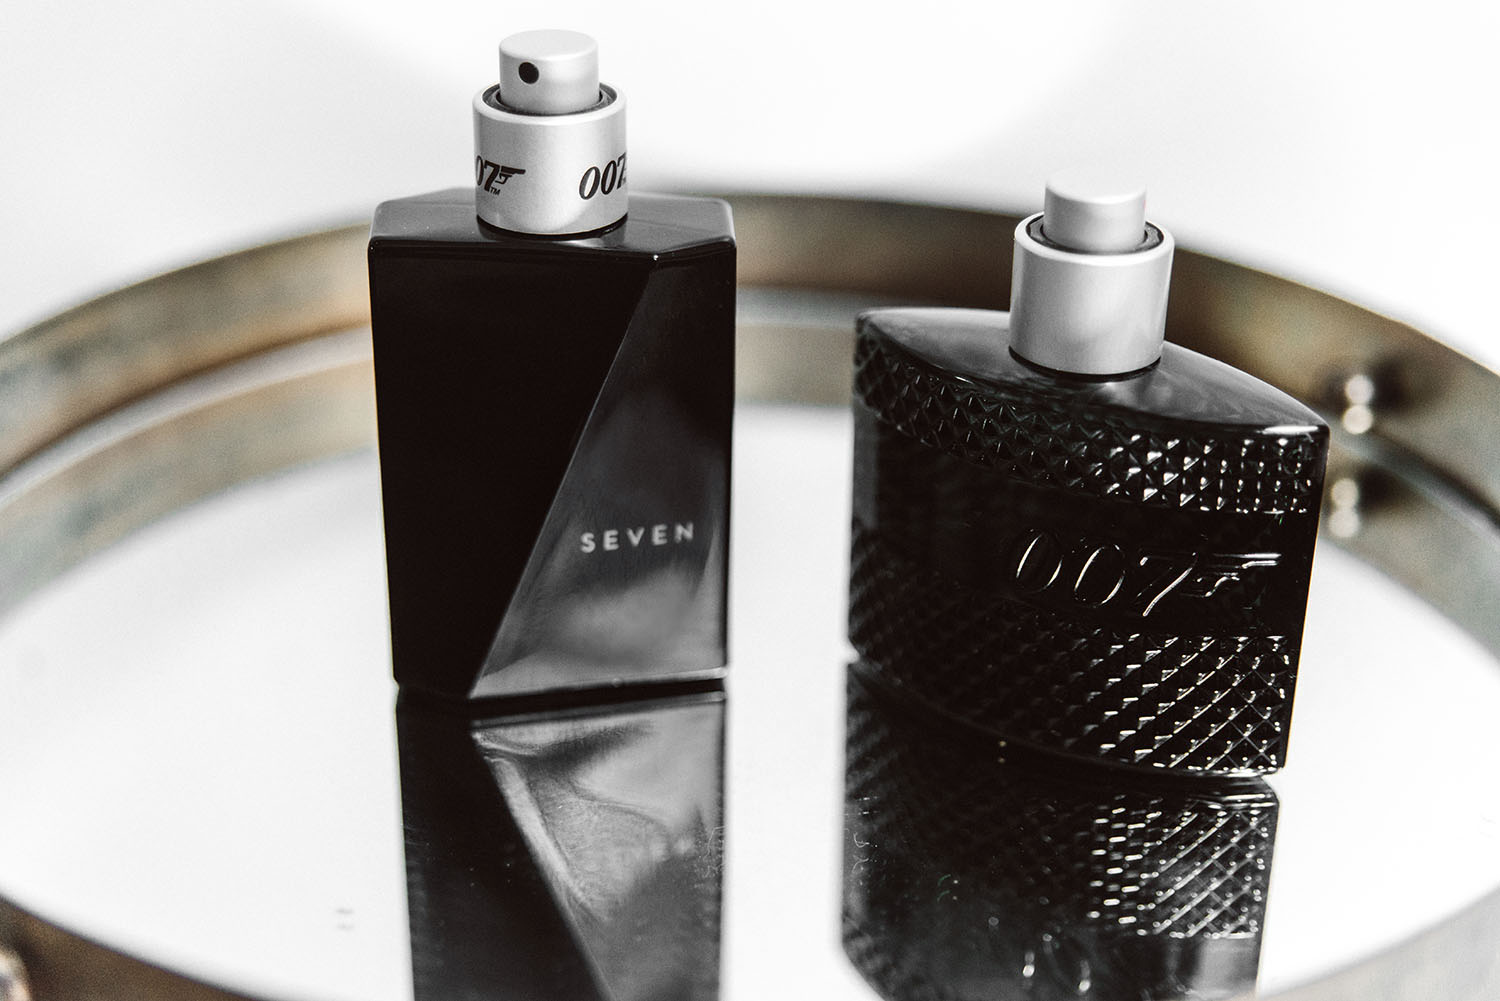 Herrparfymer / Fragrances for men: James Bond 007 Seven EdT & James Bond 007 EdT